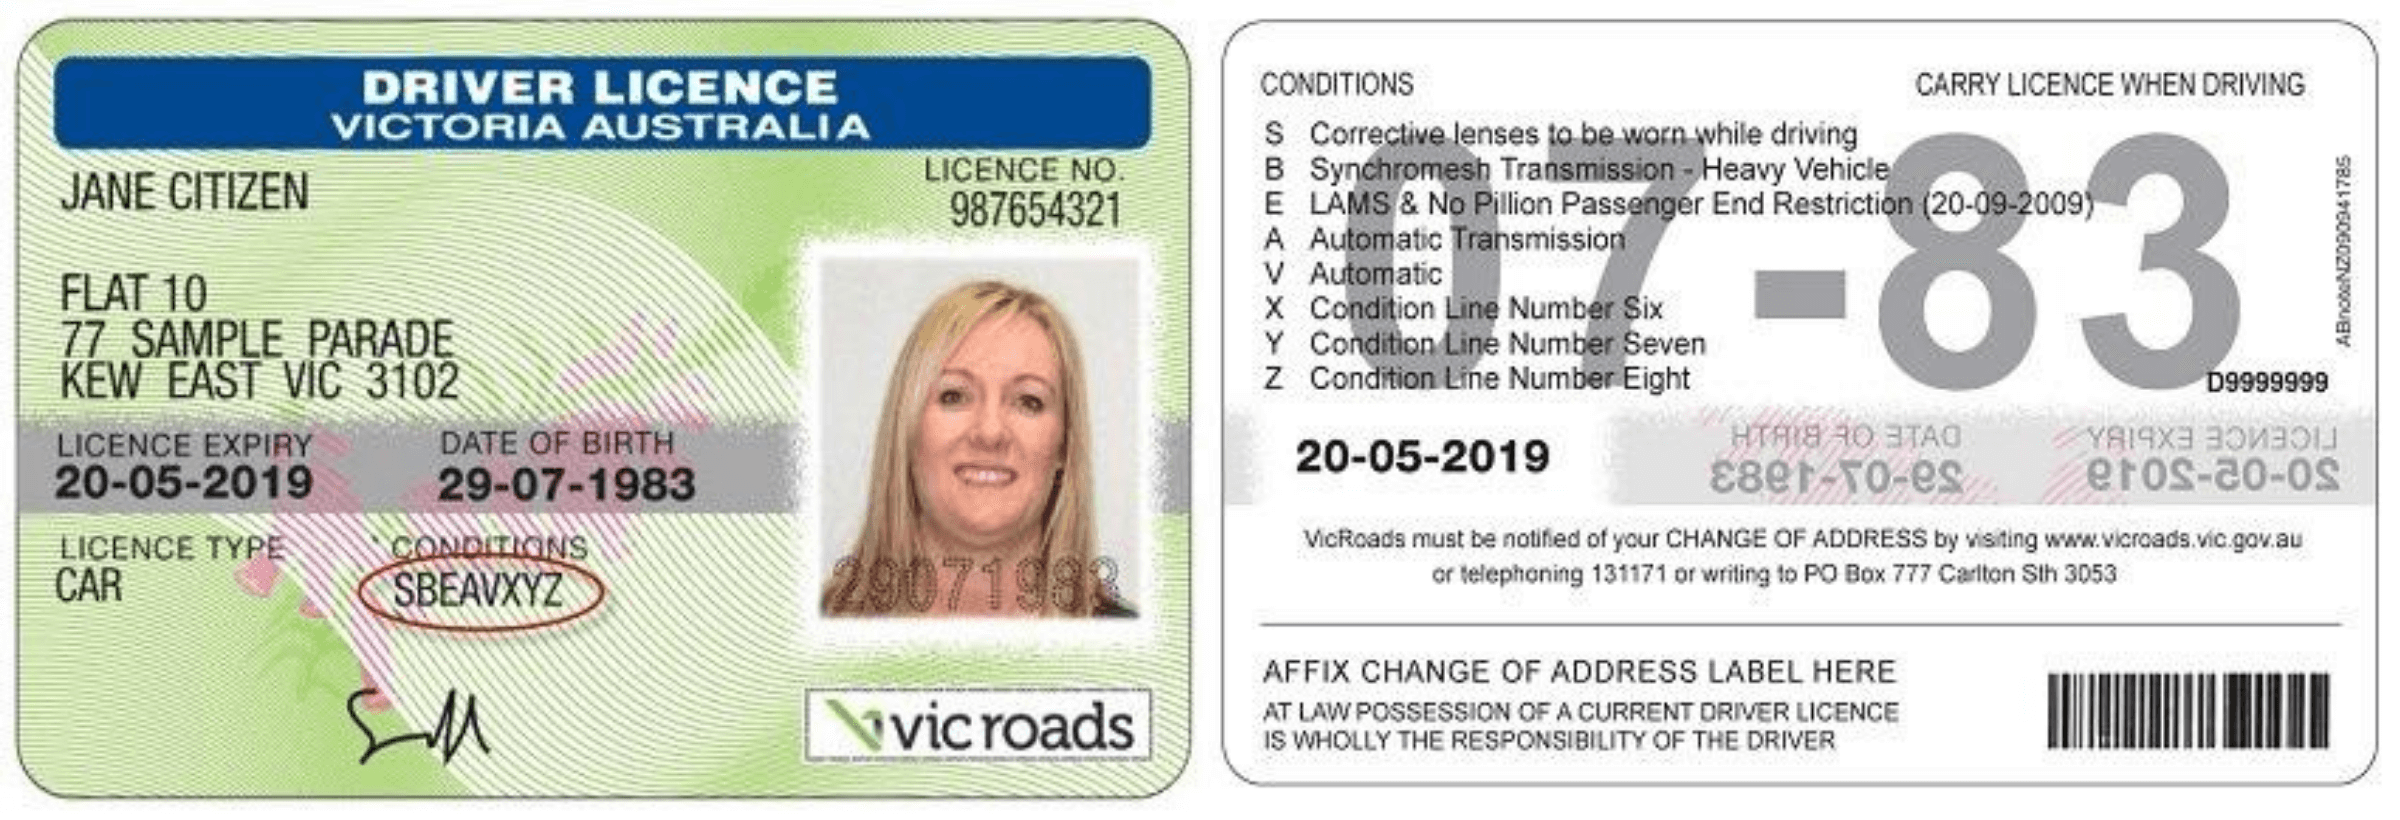 Sample VicRoads drivers licence showing conditions printed on the front and back